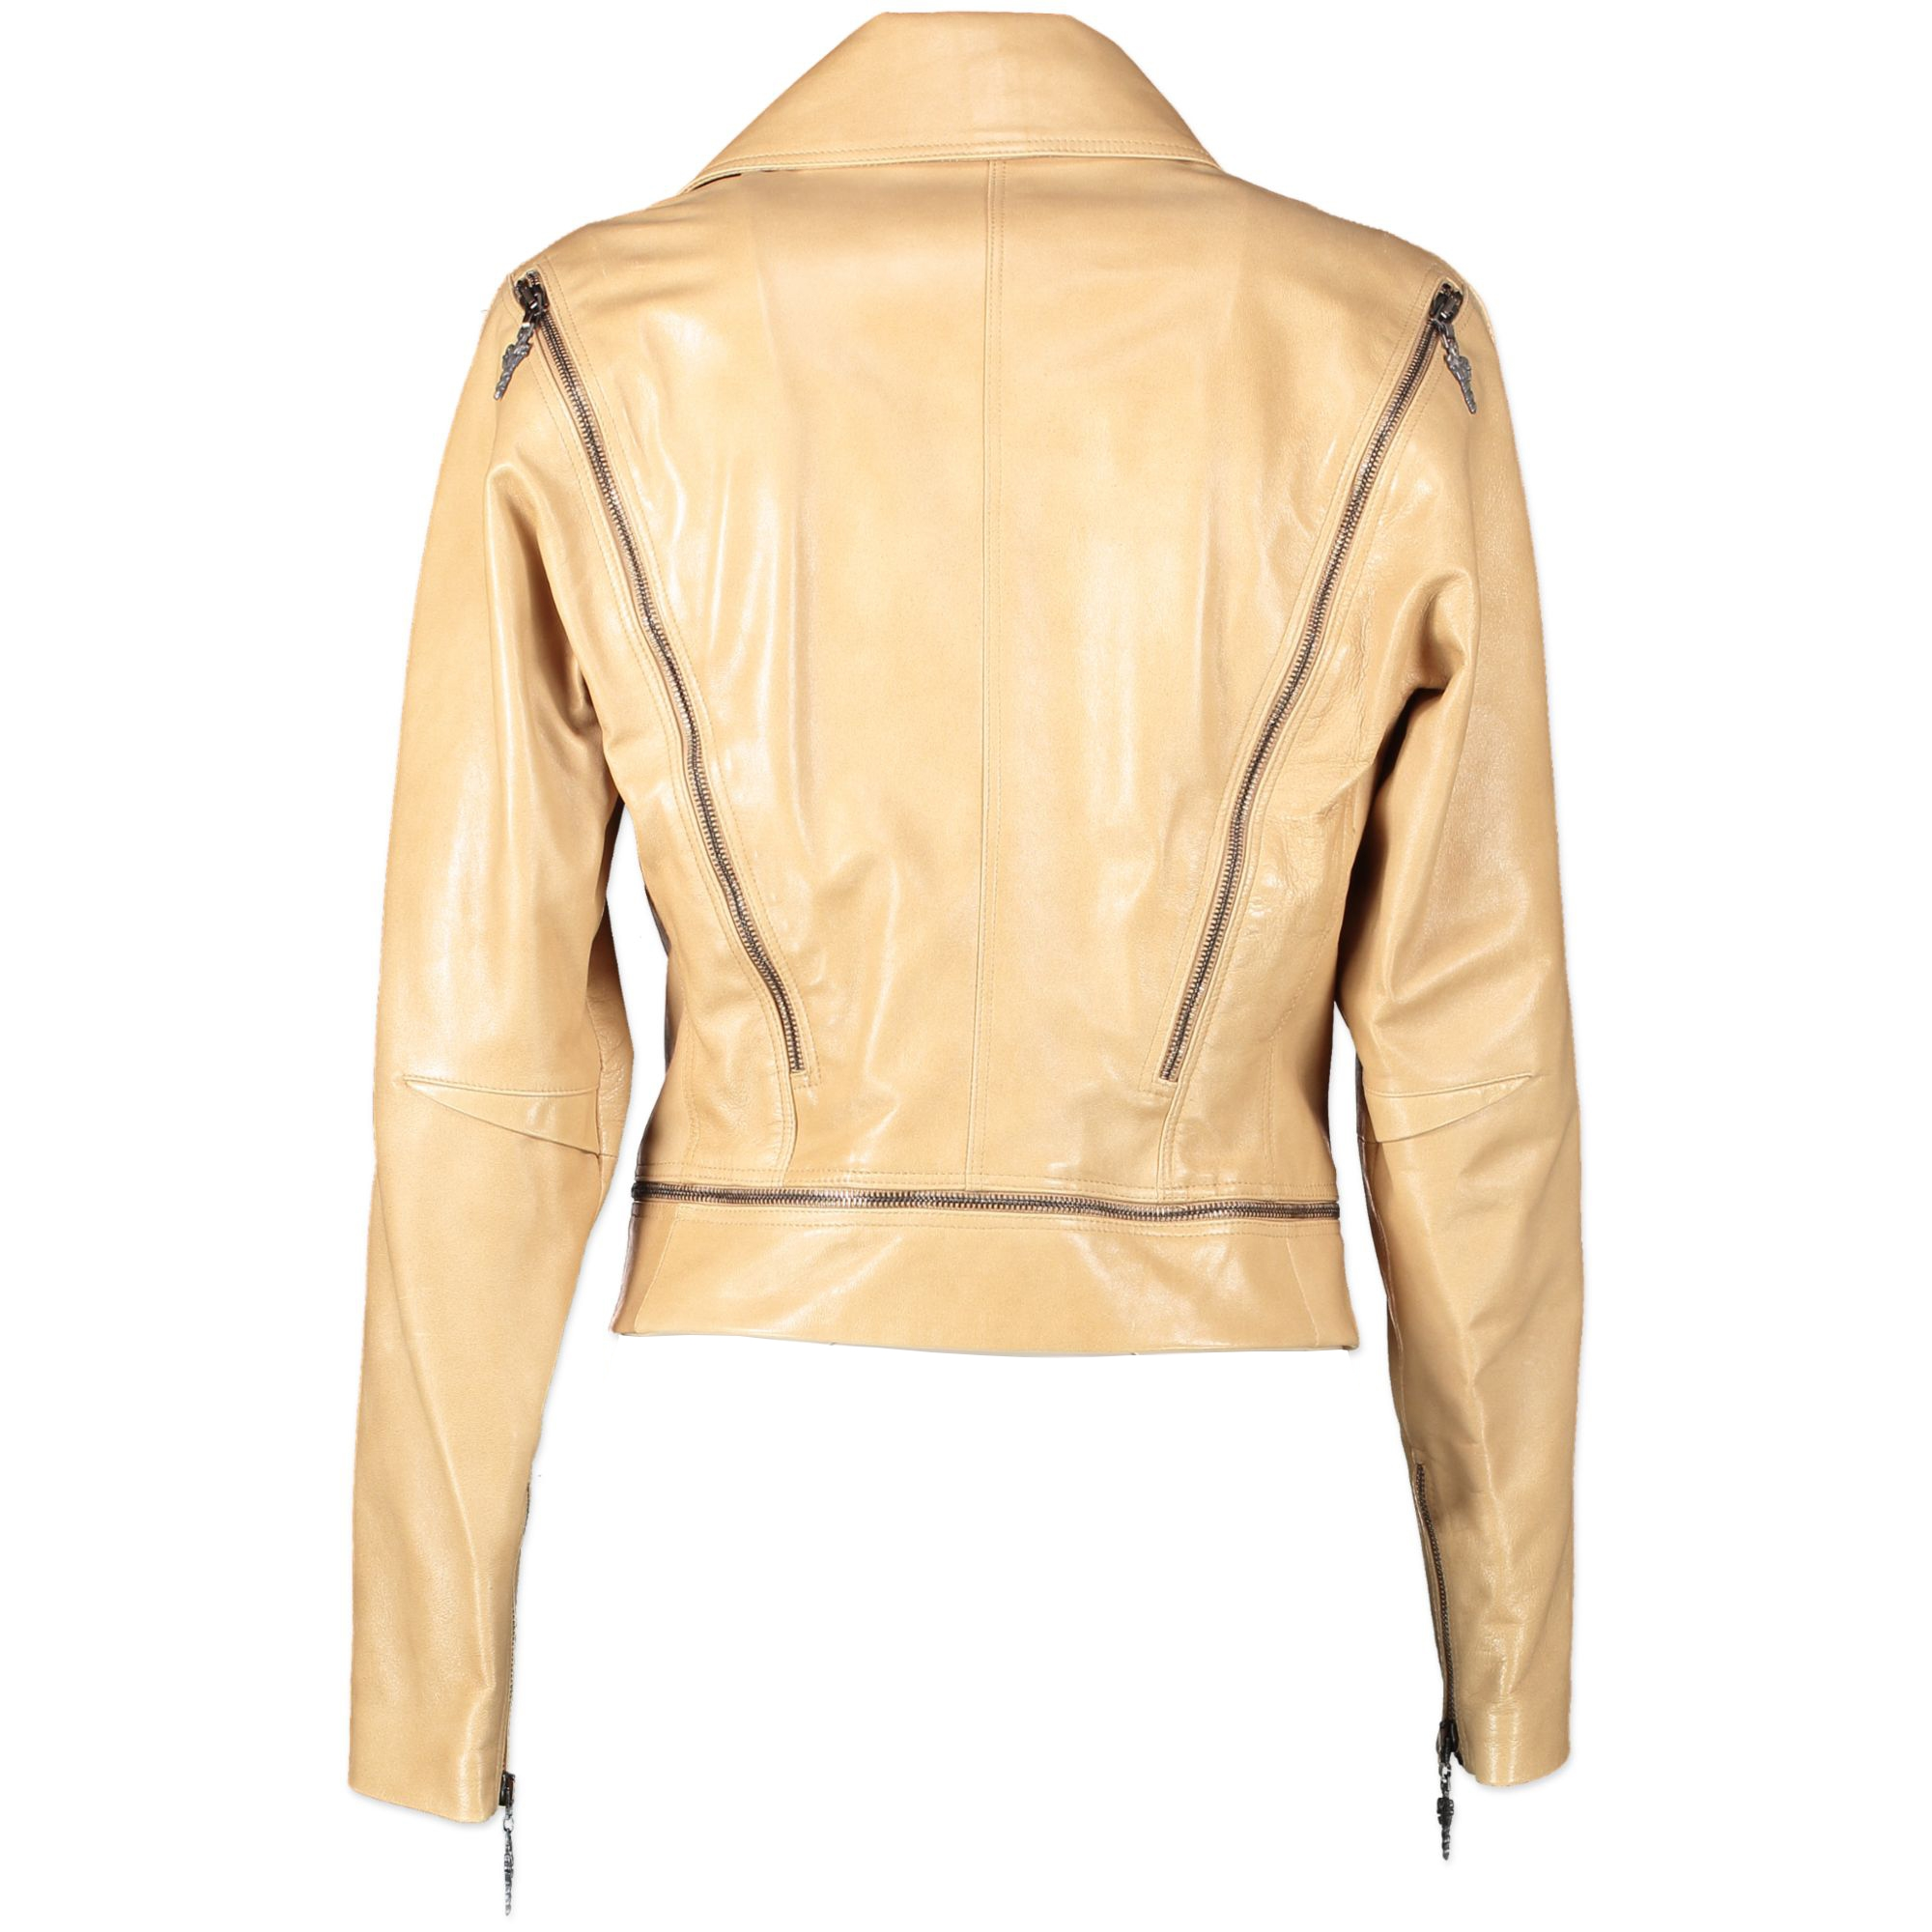 Versace Beige Leather Biker Jacket - size 40